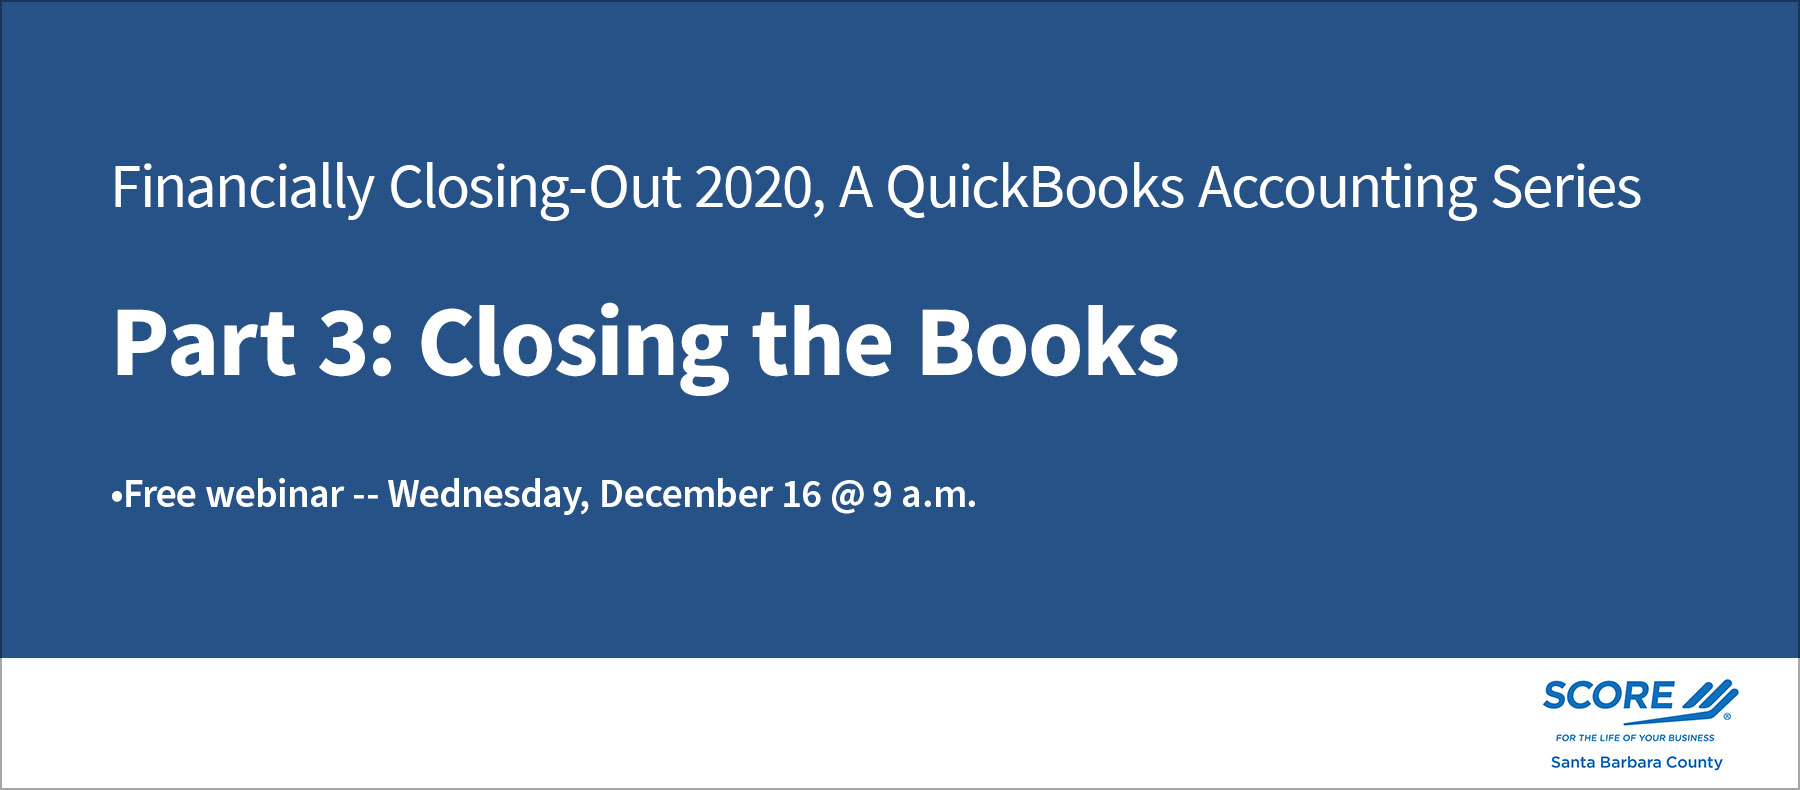 Score Santa Barbara Webinar – QuickBooks Accounting Series Pt. 3 (Closing the Books)